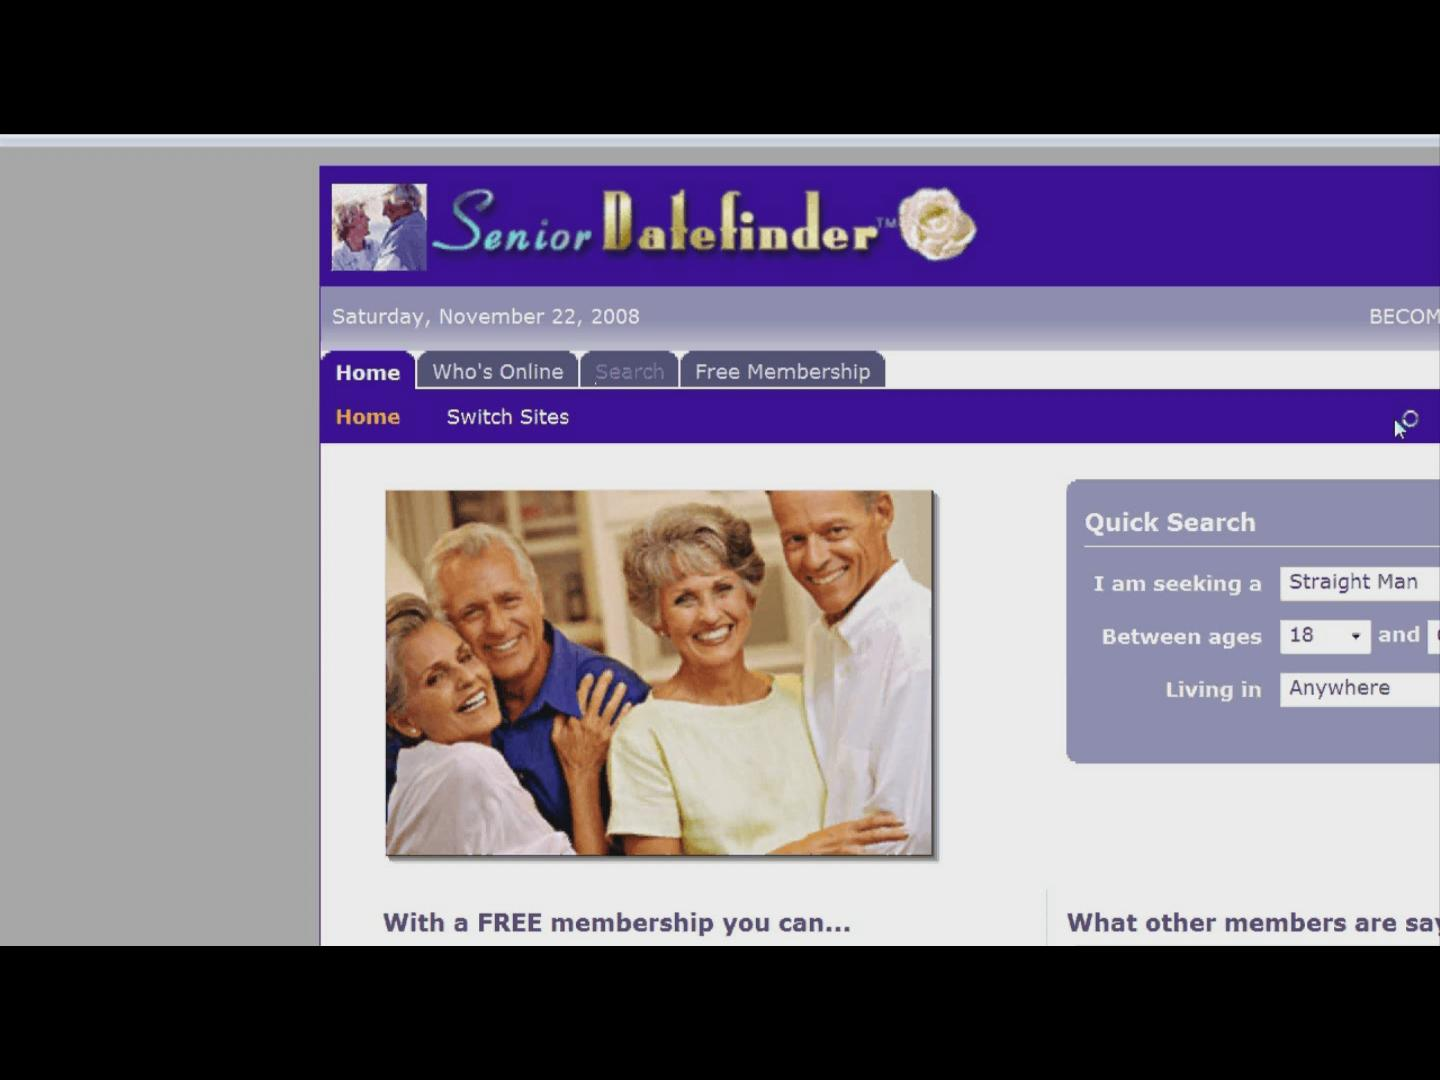 hawaiian gardens senior dating site The official website of the philadelphia phillies with the most up-to-date information on scores, schedule,  the official site of the philadelphia phillies.